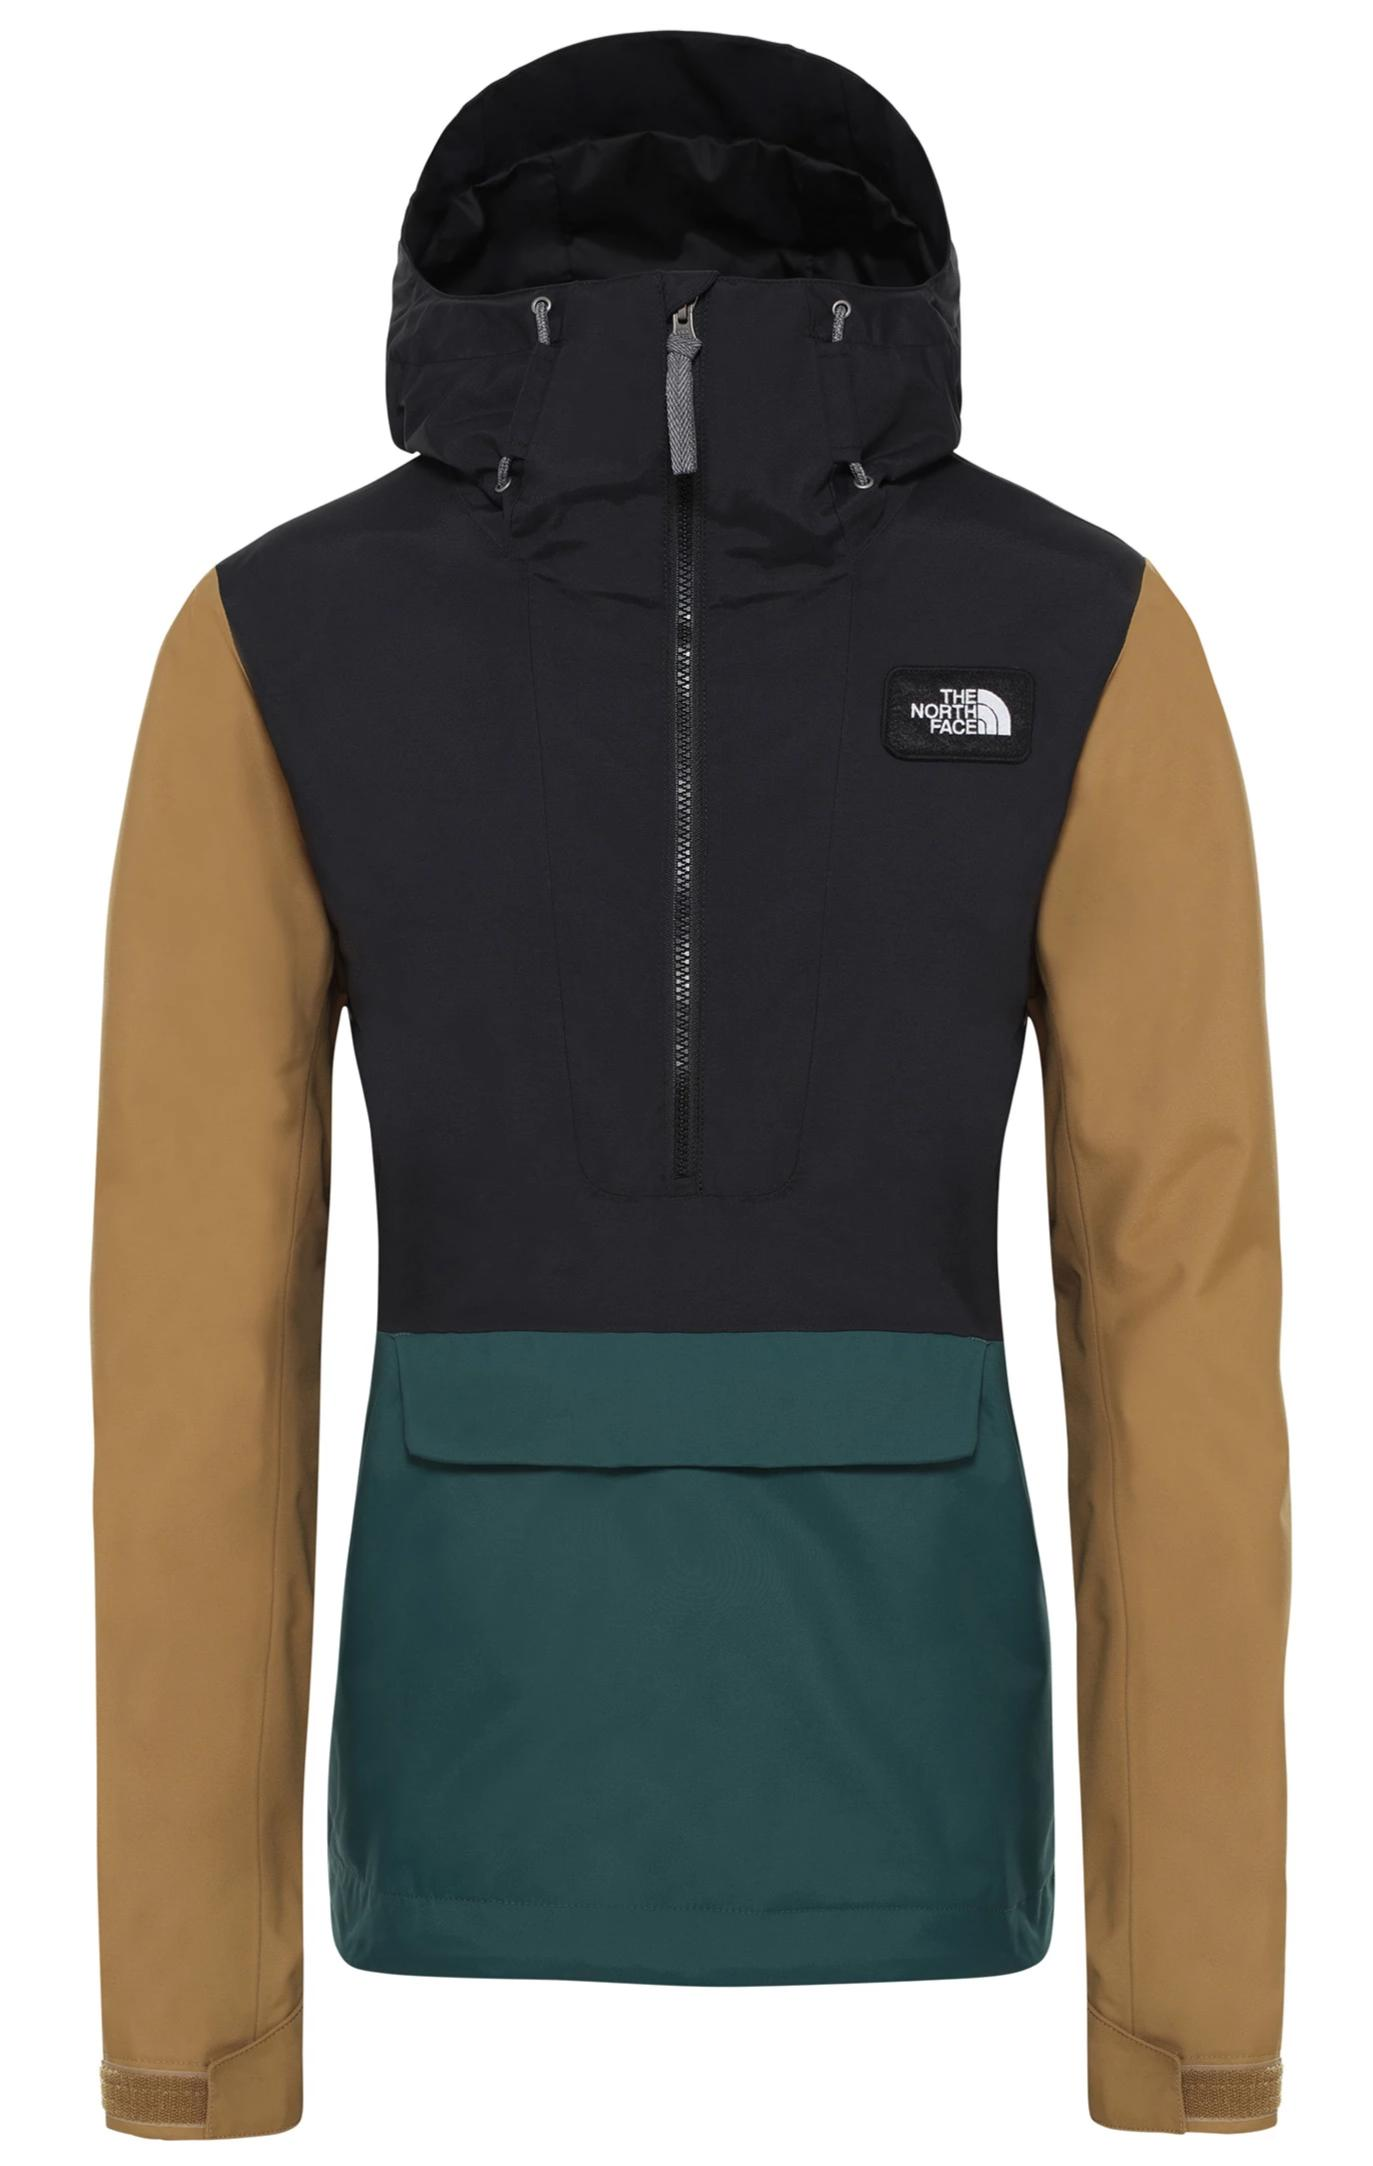 The North Face Womens Tanager Ski Jacket